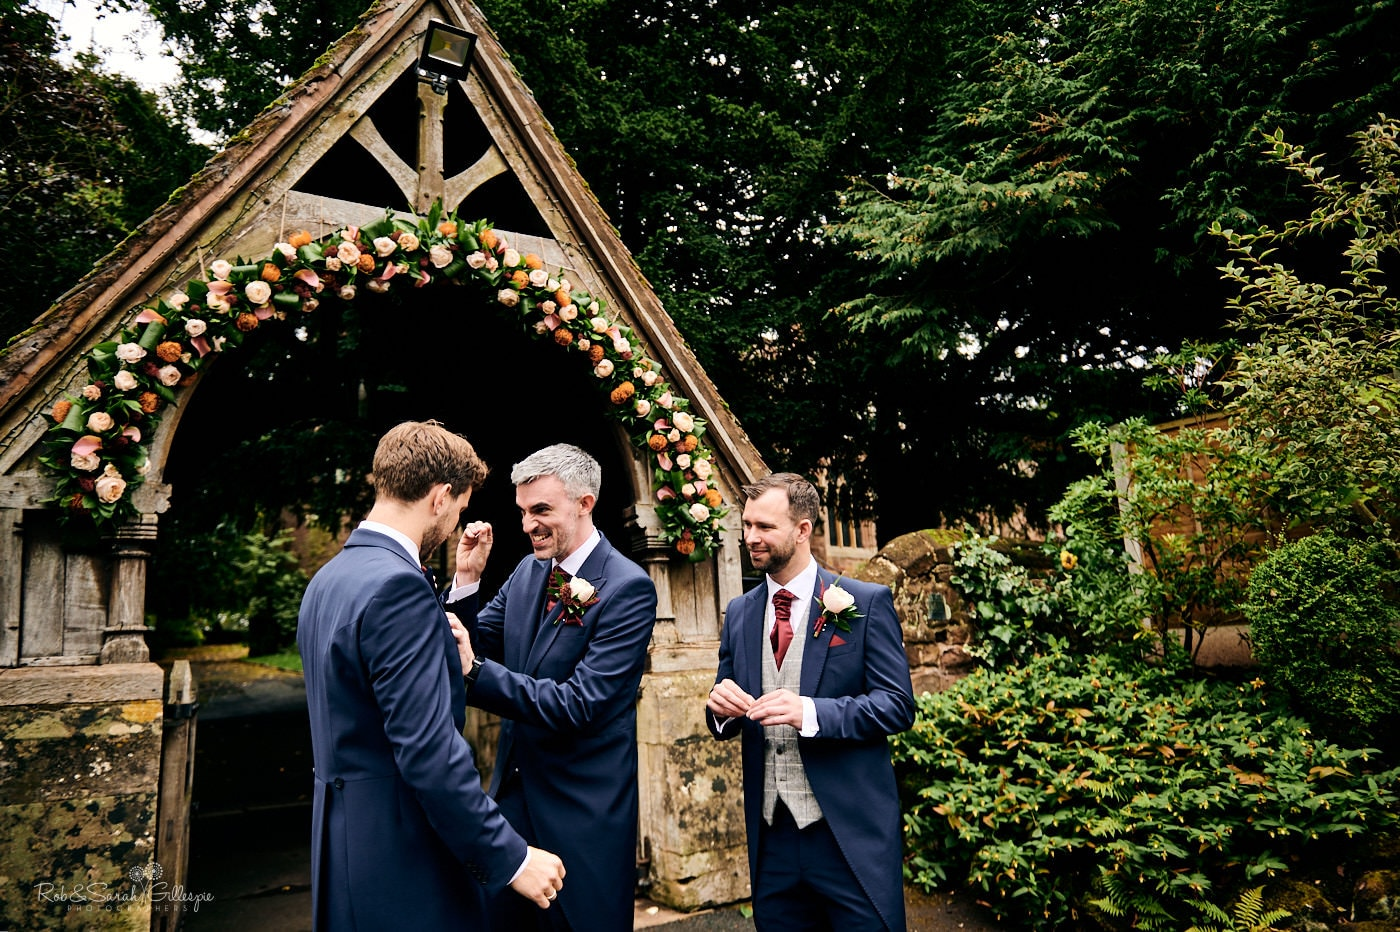 Groom and groomsmen fixing buttonhole flowers in front of lychgate at St Peter's church Pedmore